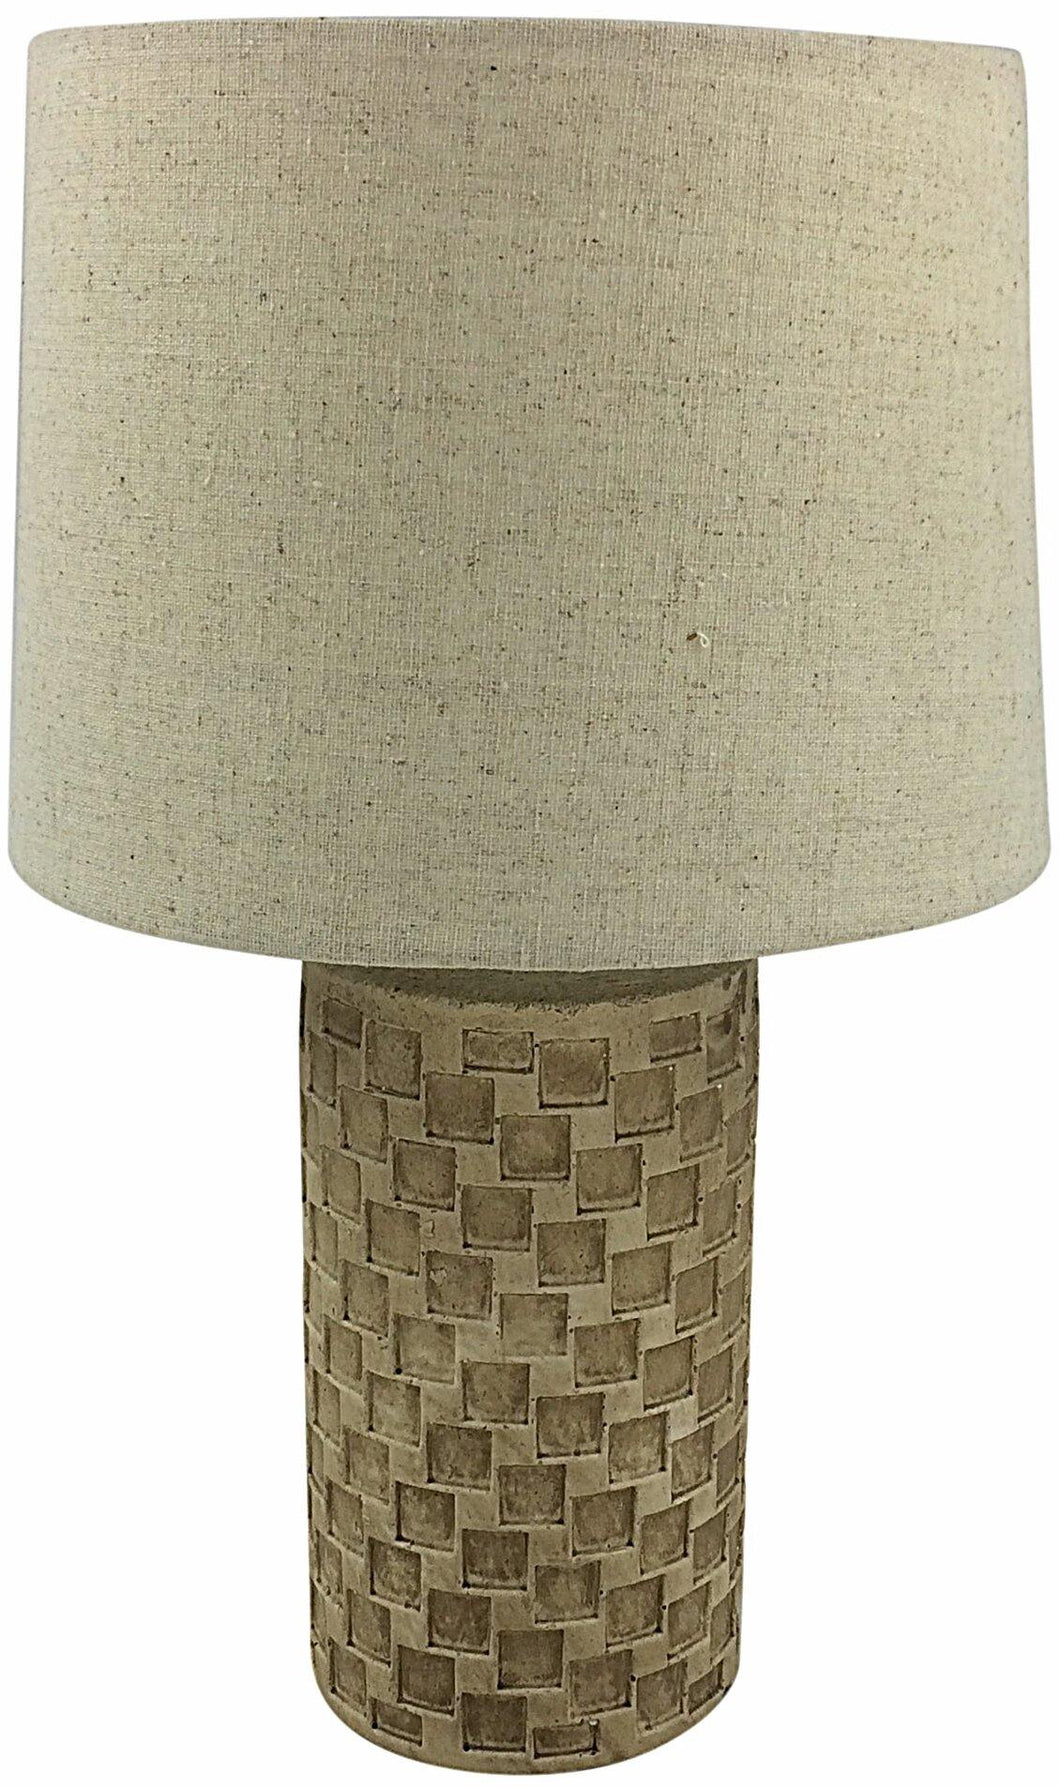 Beige Tile Lamp And Shade 38cm - Angelo's Outlet Ltd